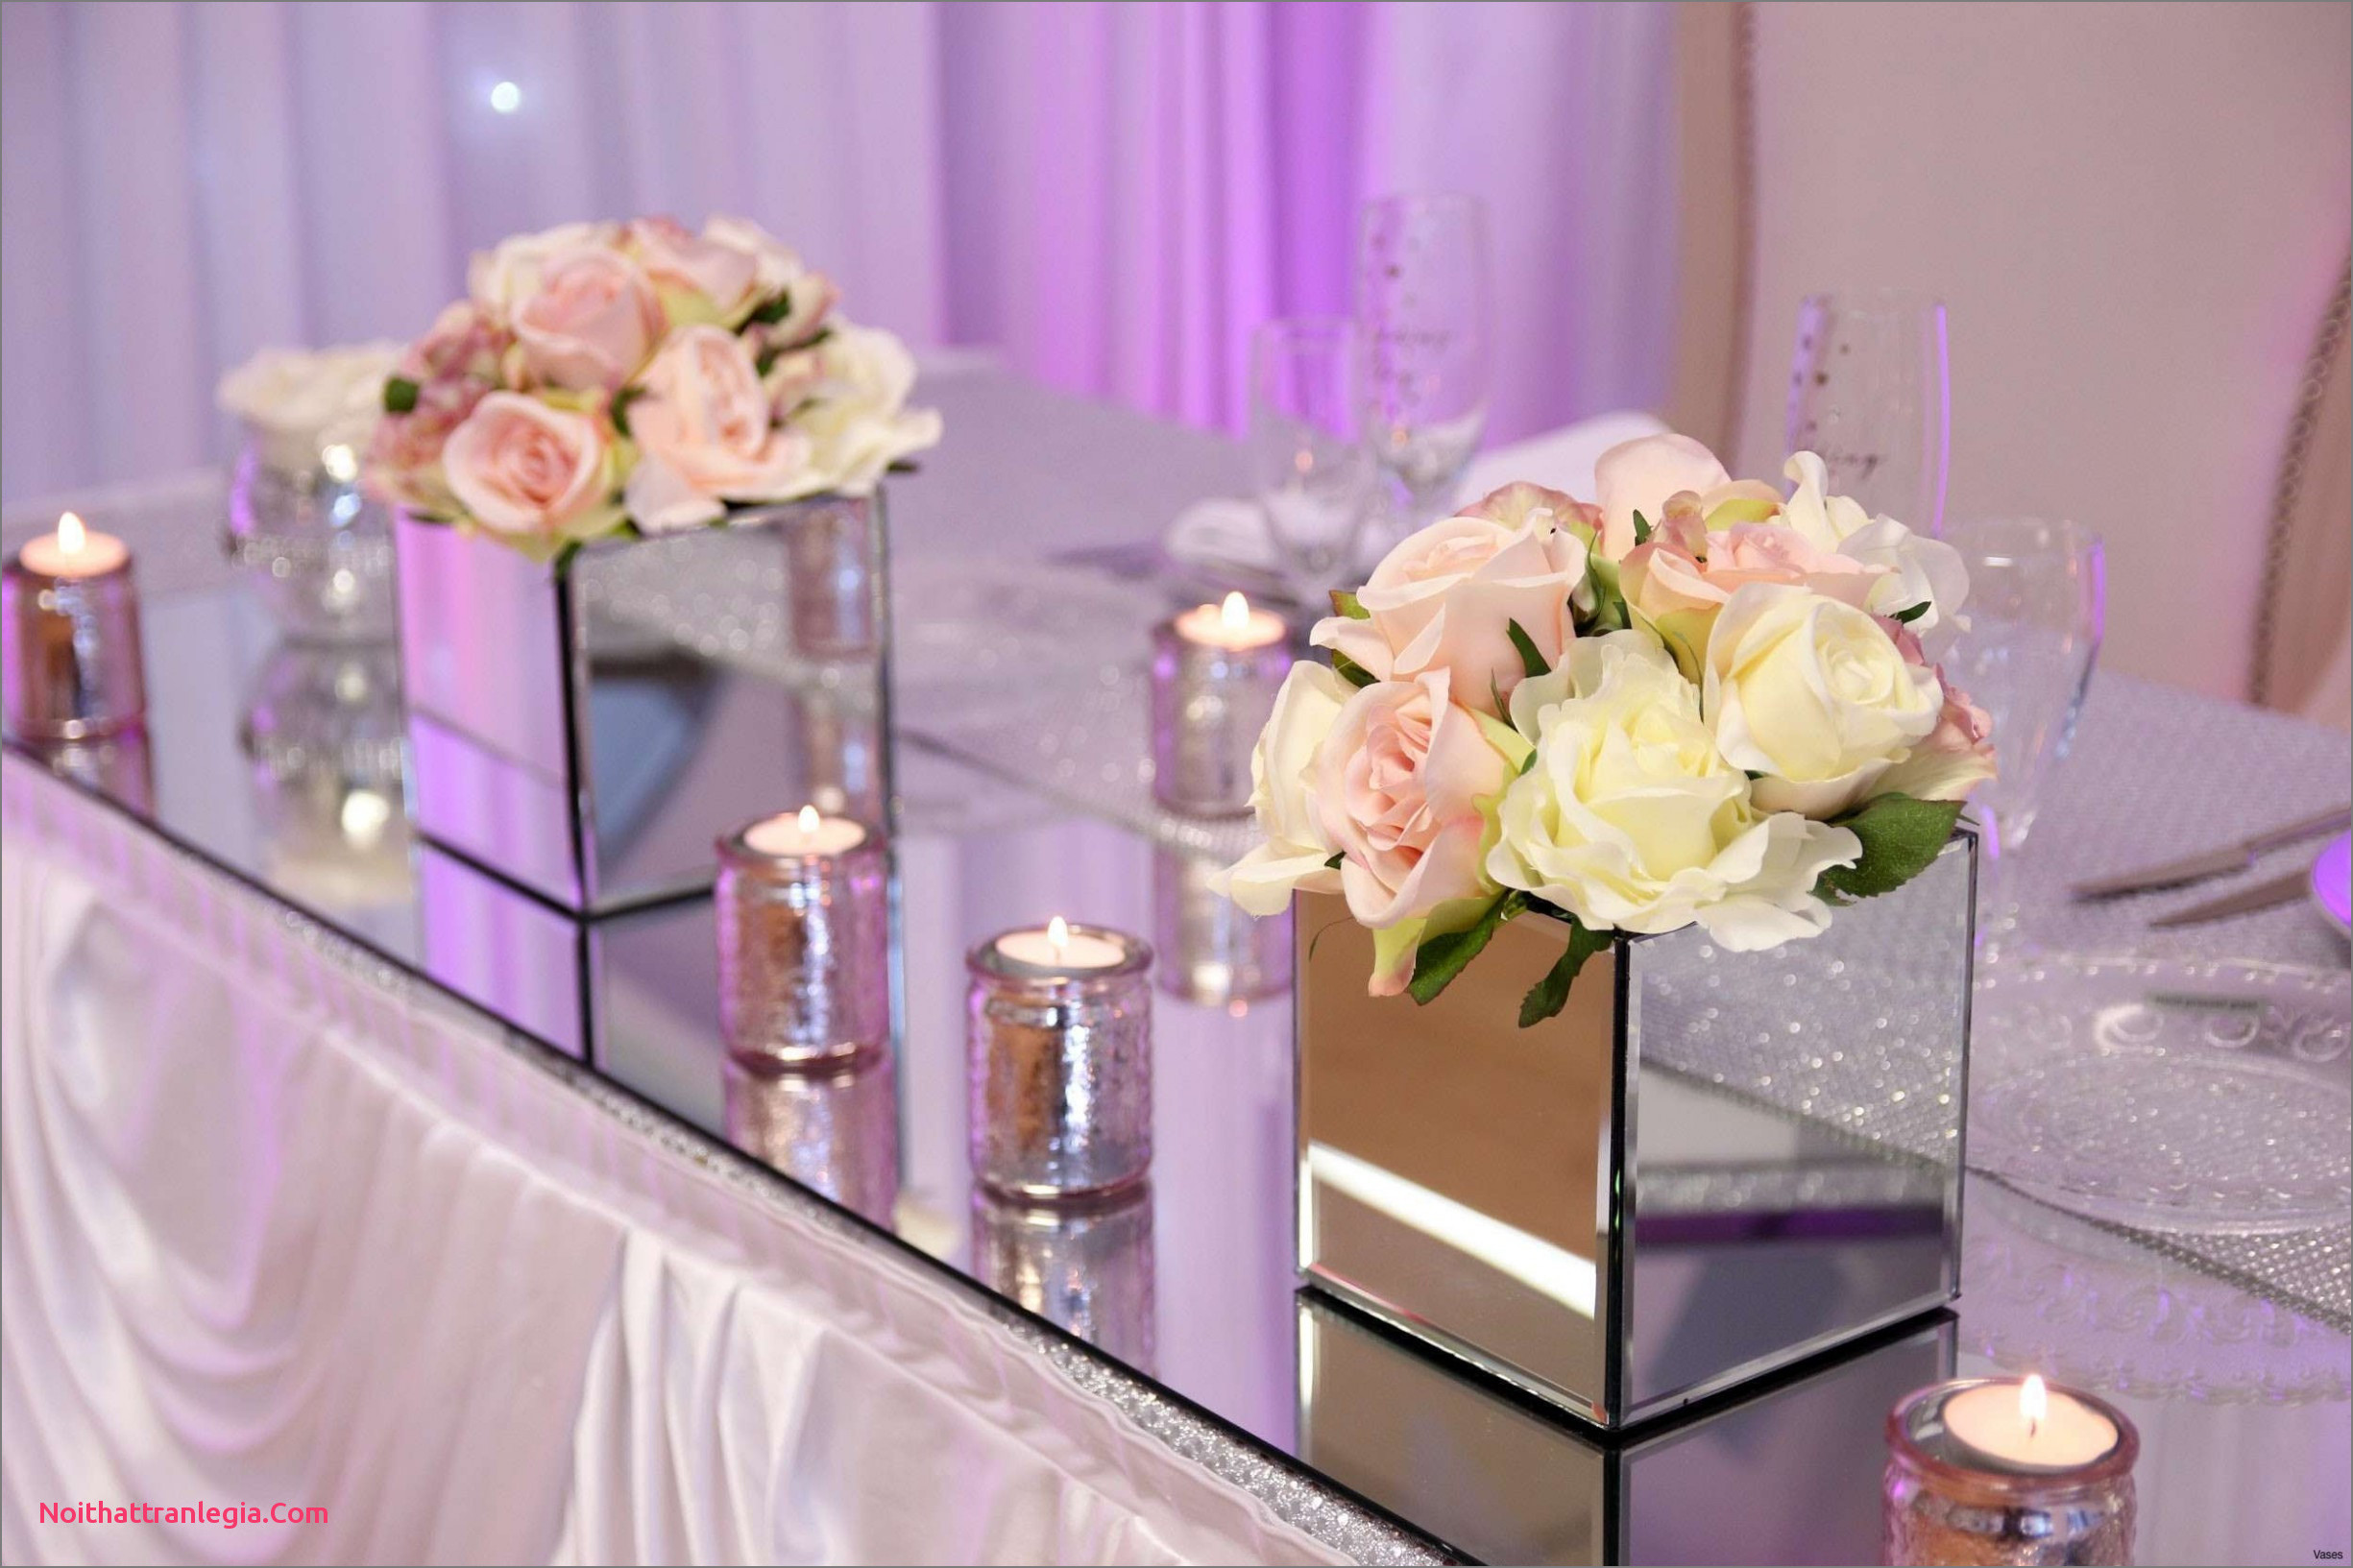 26 Stunning Small Glass Vases In Bulk 2021 free download small glass vases in bulk of 20 wedding vases noithattranlegia vases design with regard to mirrored square vase 3h vases mirror table decorationi 0d weddings